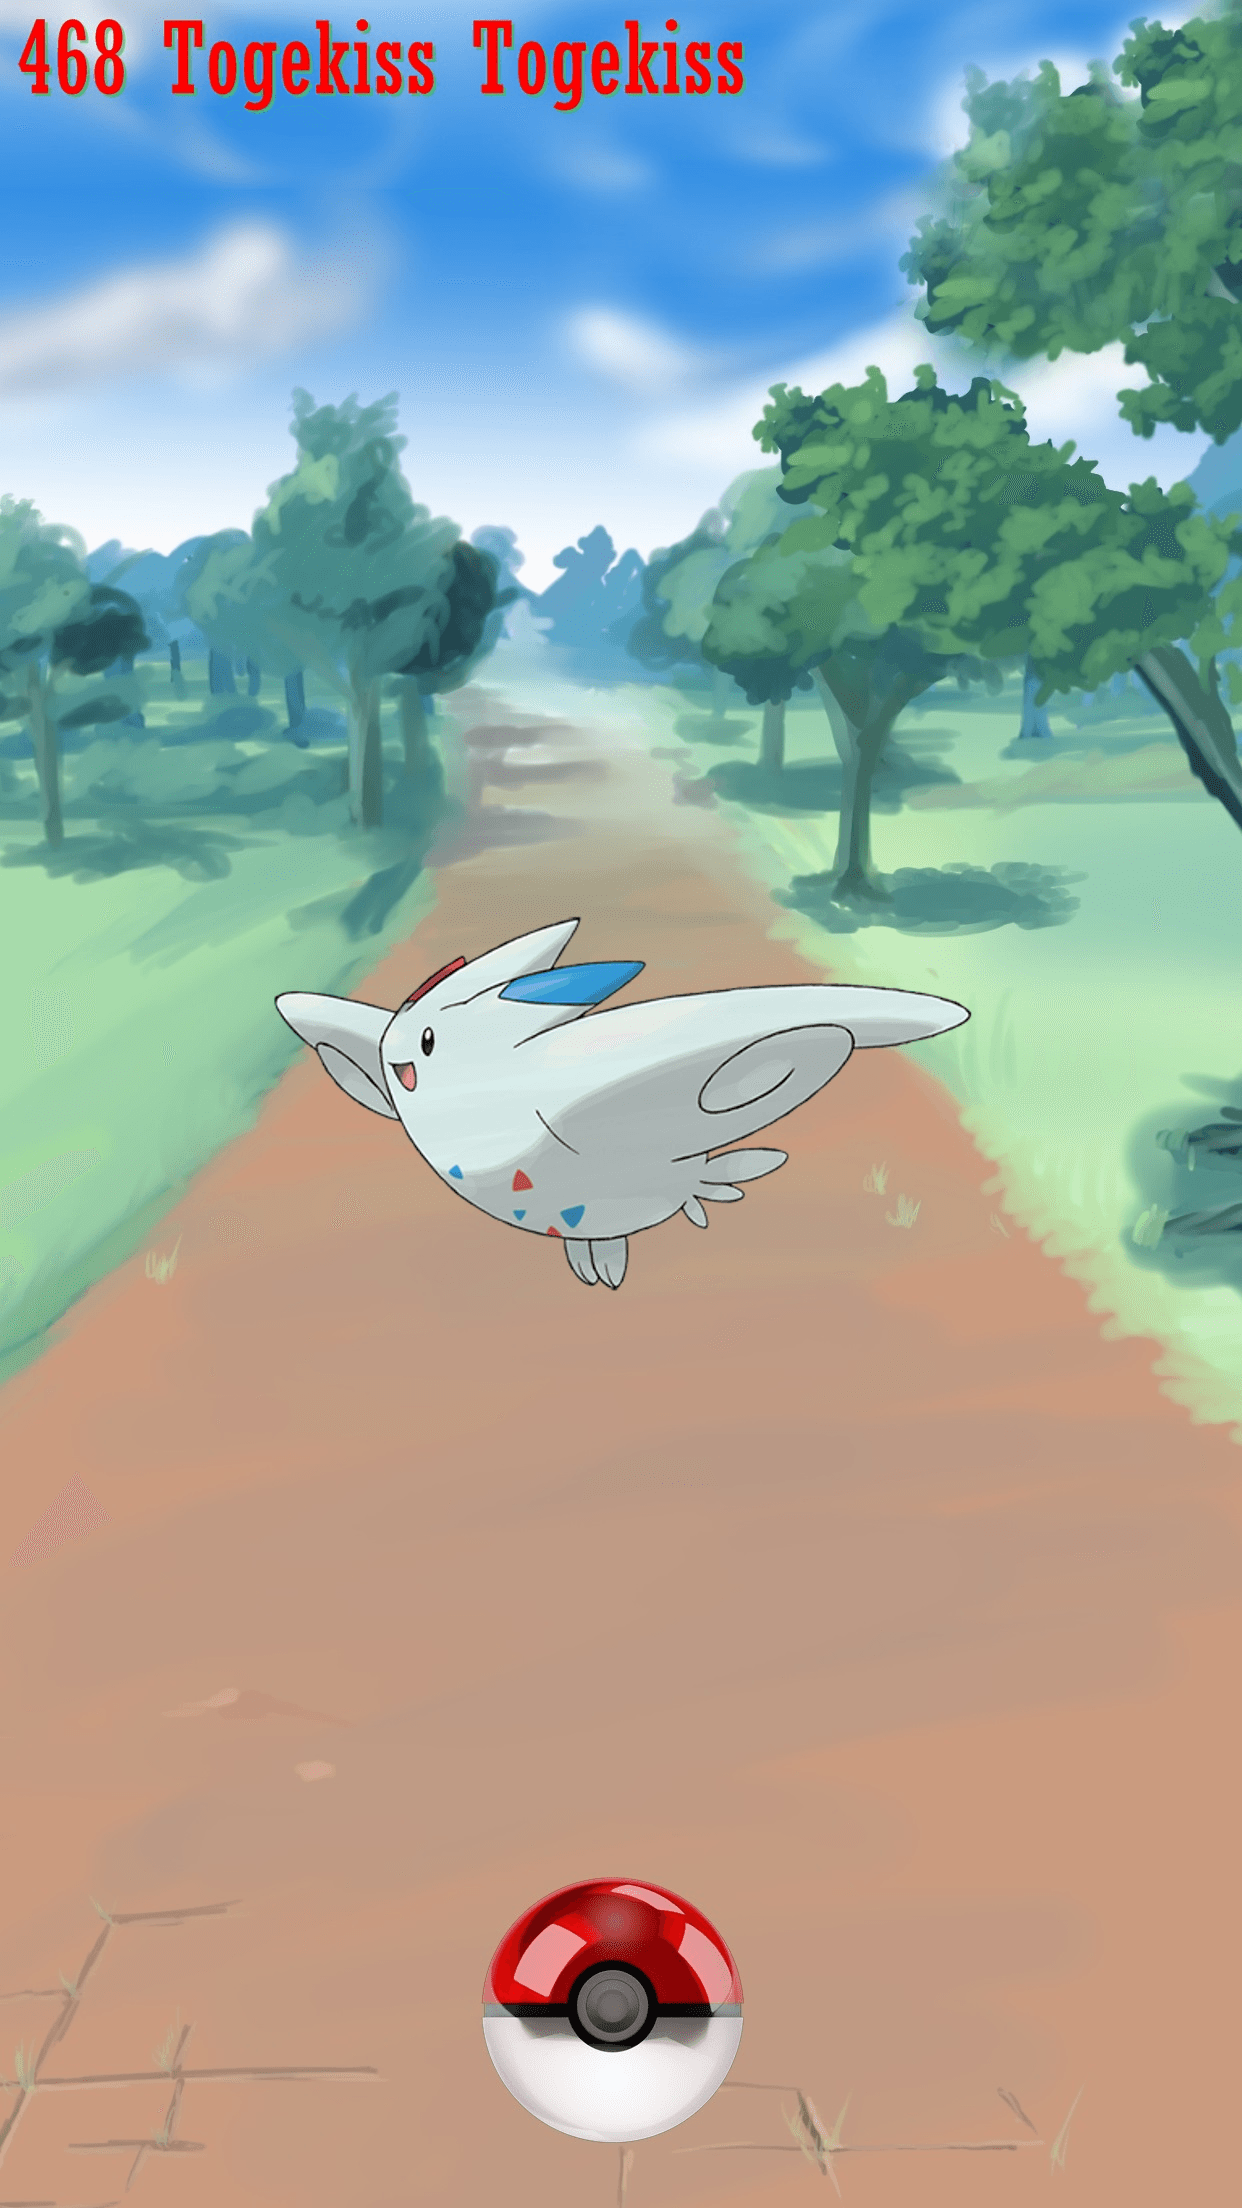 468 Street Pokeball Togekiss Togekiss | Wallpaper